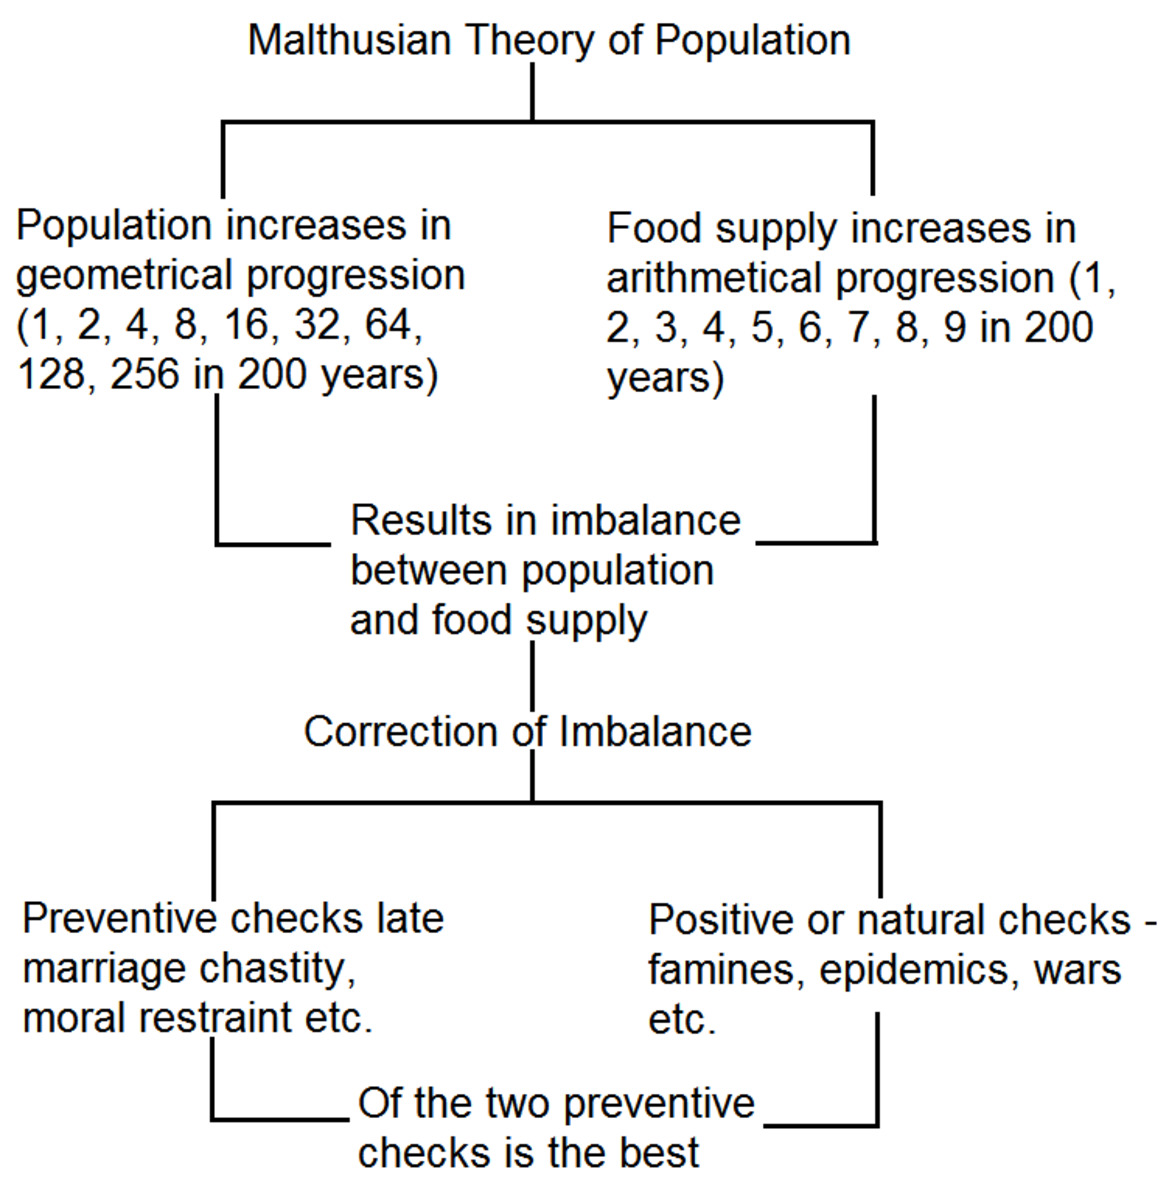 malthusian-theory-of-population